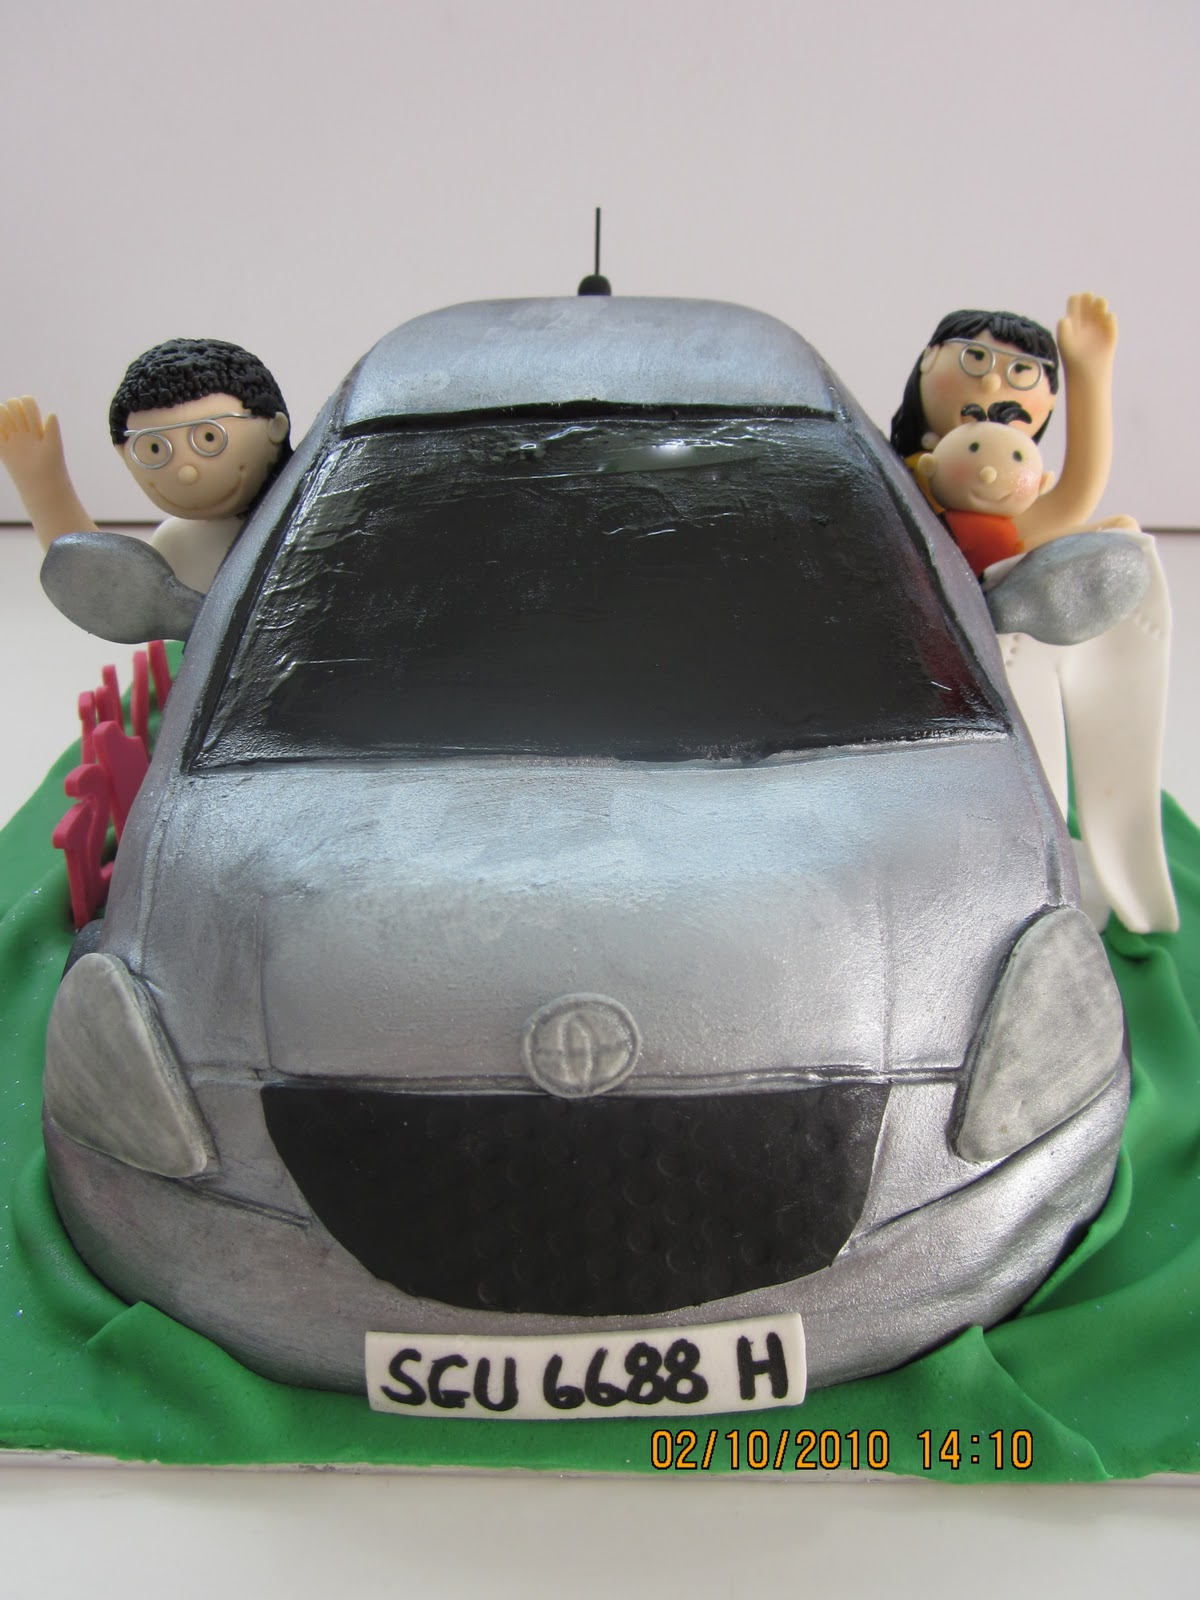 Car Cake With Driver And Cupcakes